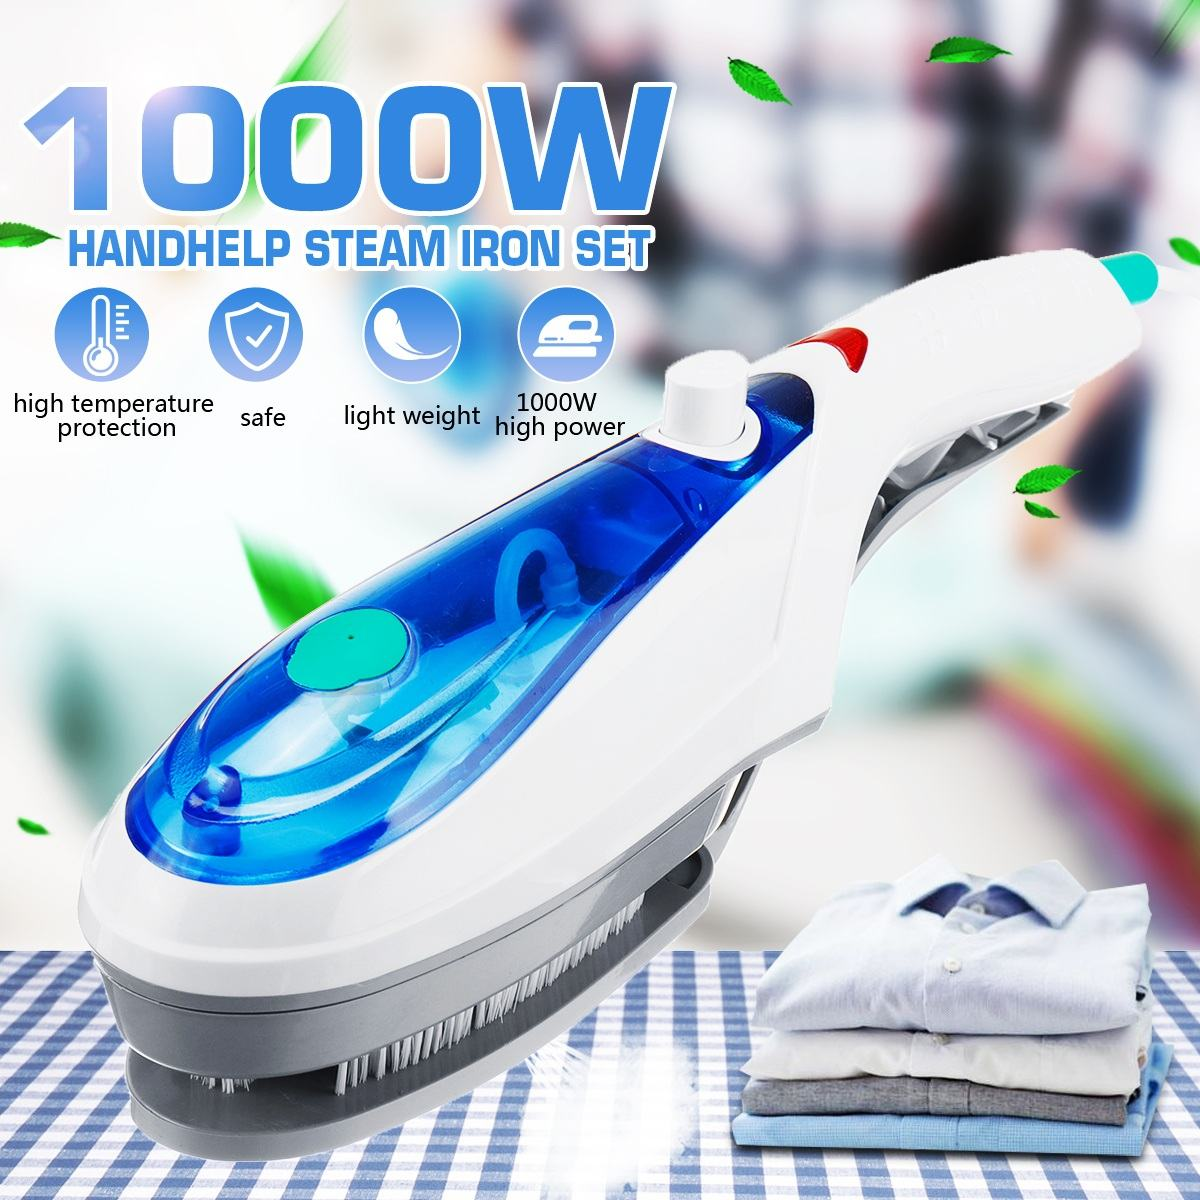 Handheld Garment Steamer Brush Portable Steam Iron, [variant_title], [option1], [option2], [option3] - anythinganyware